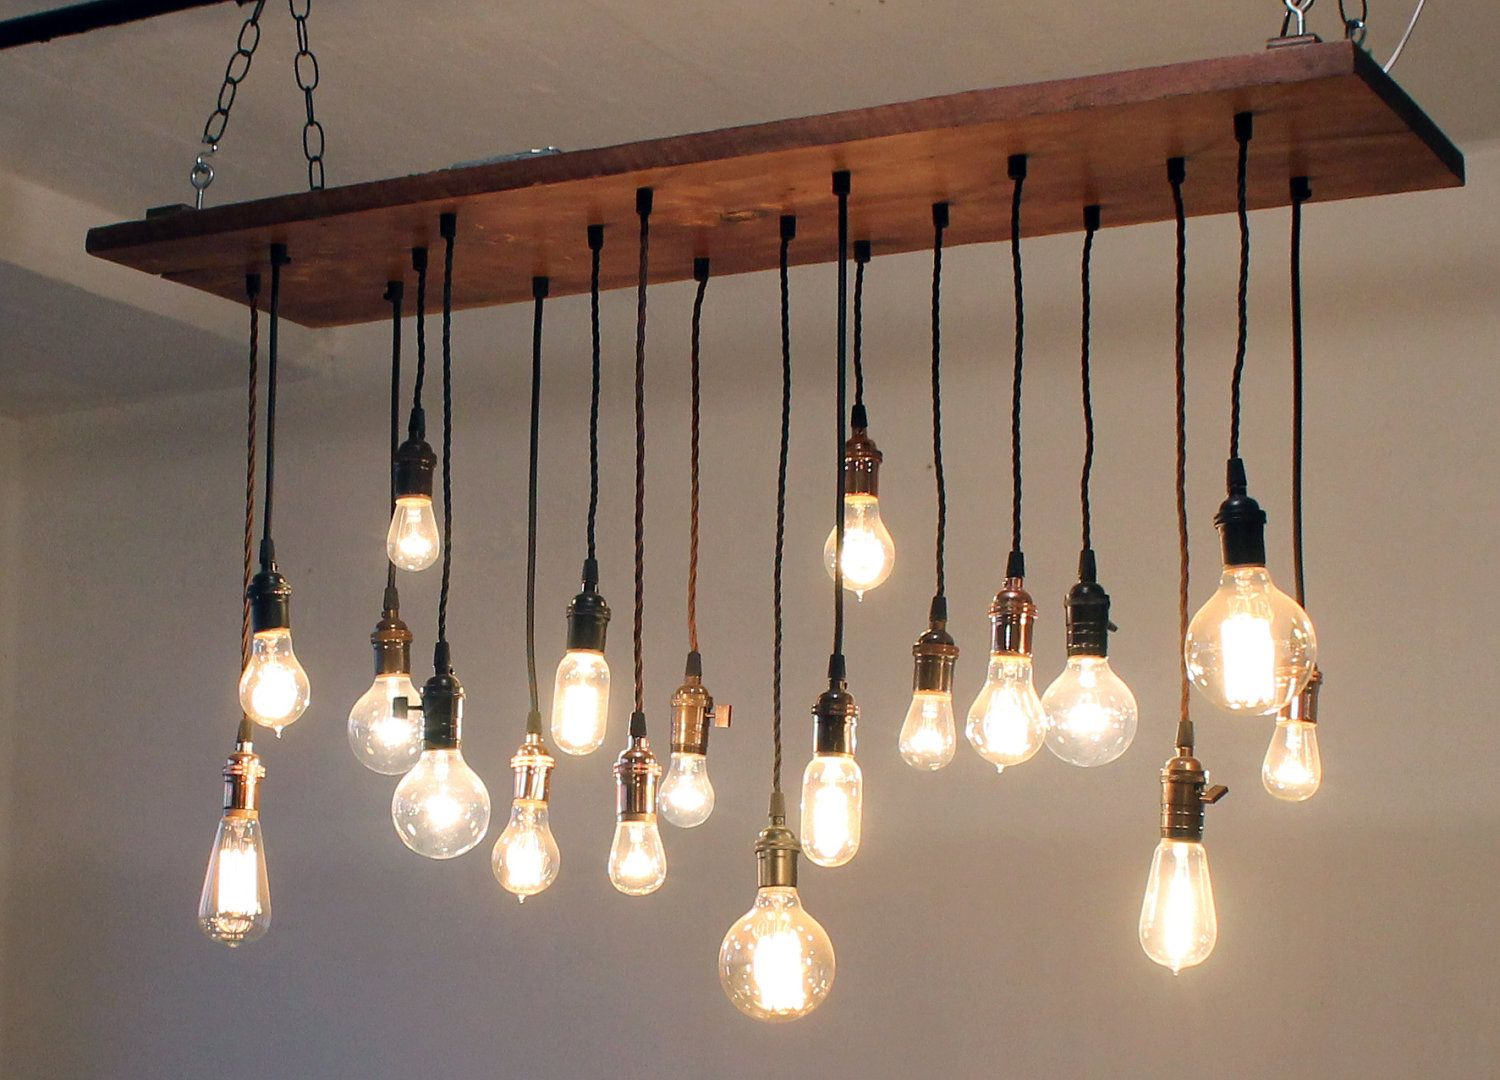 Nostalgic Reclaimed Wood Chandelier With Varying Edison Bulbs